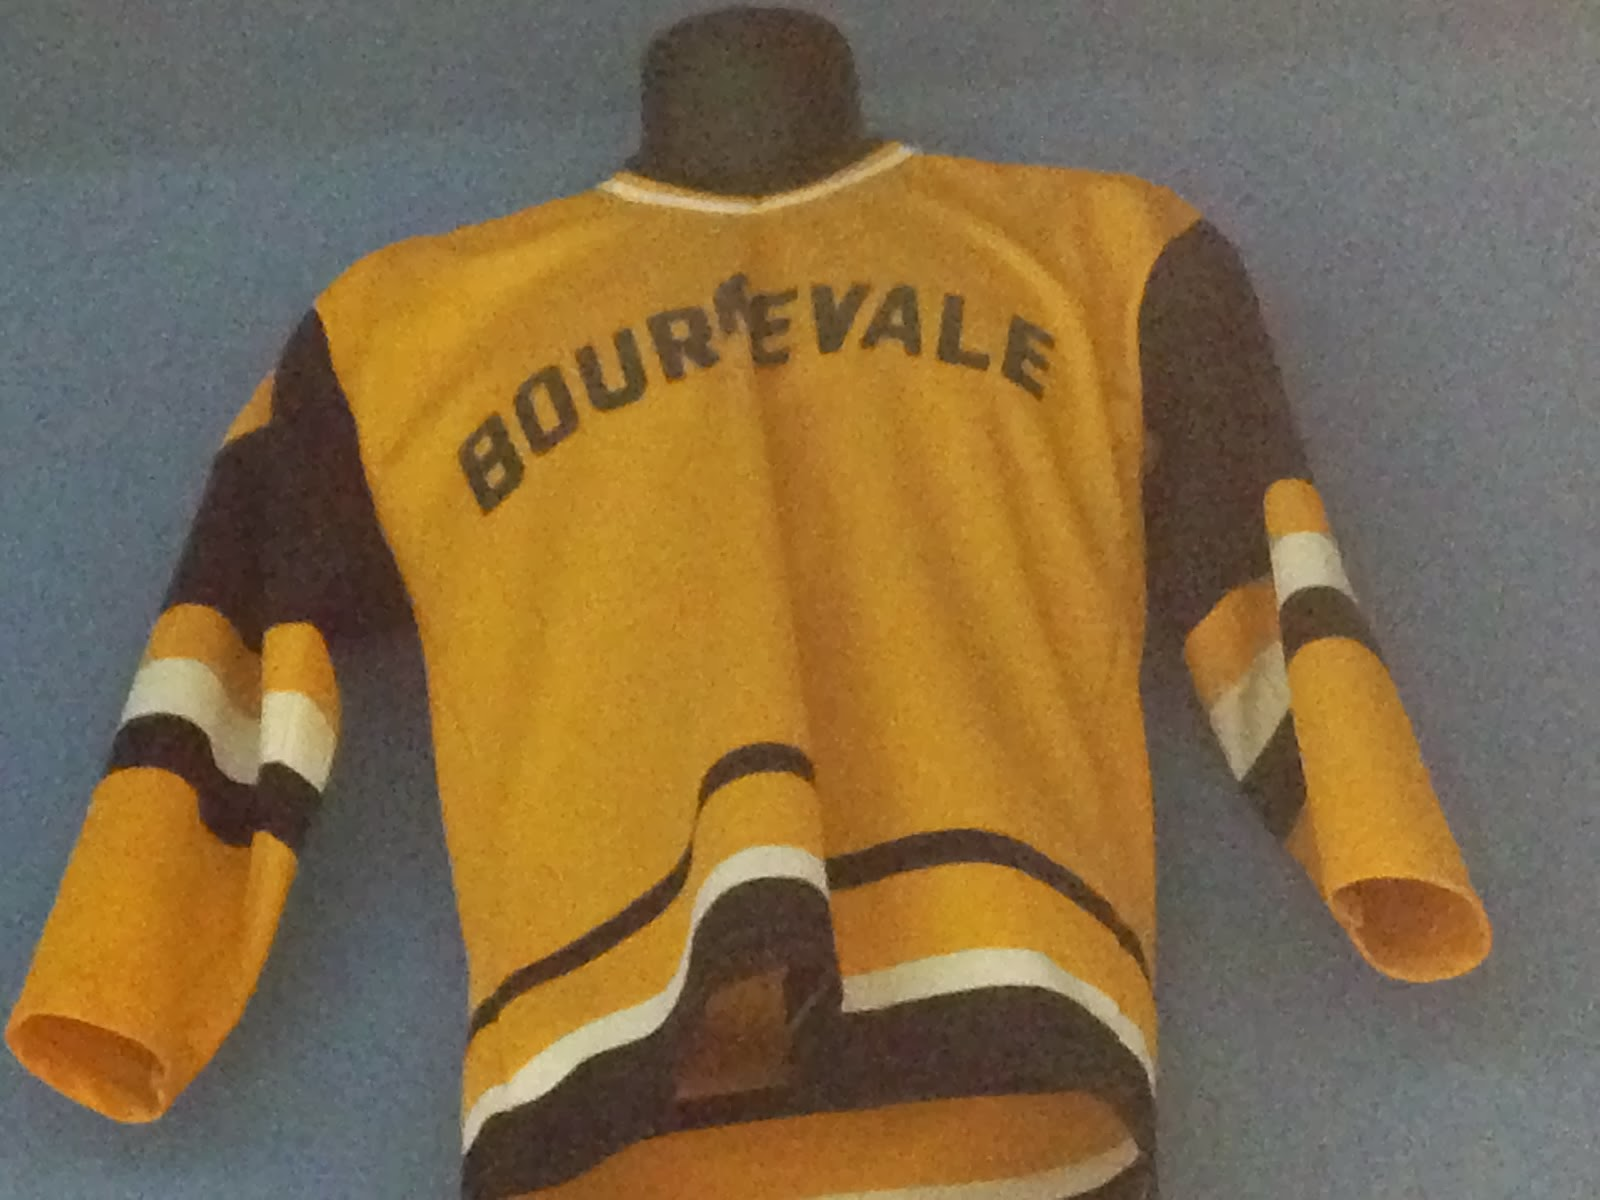 Bourkevale featured at MTS Centre